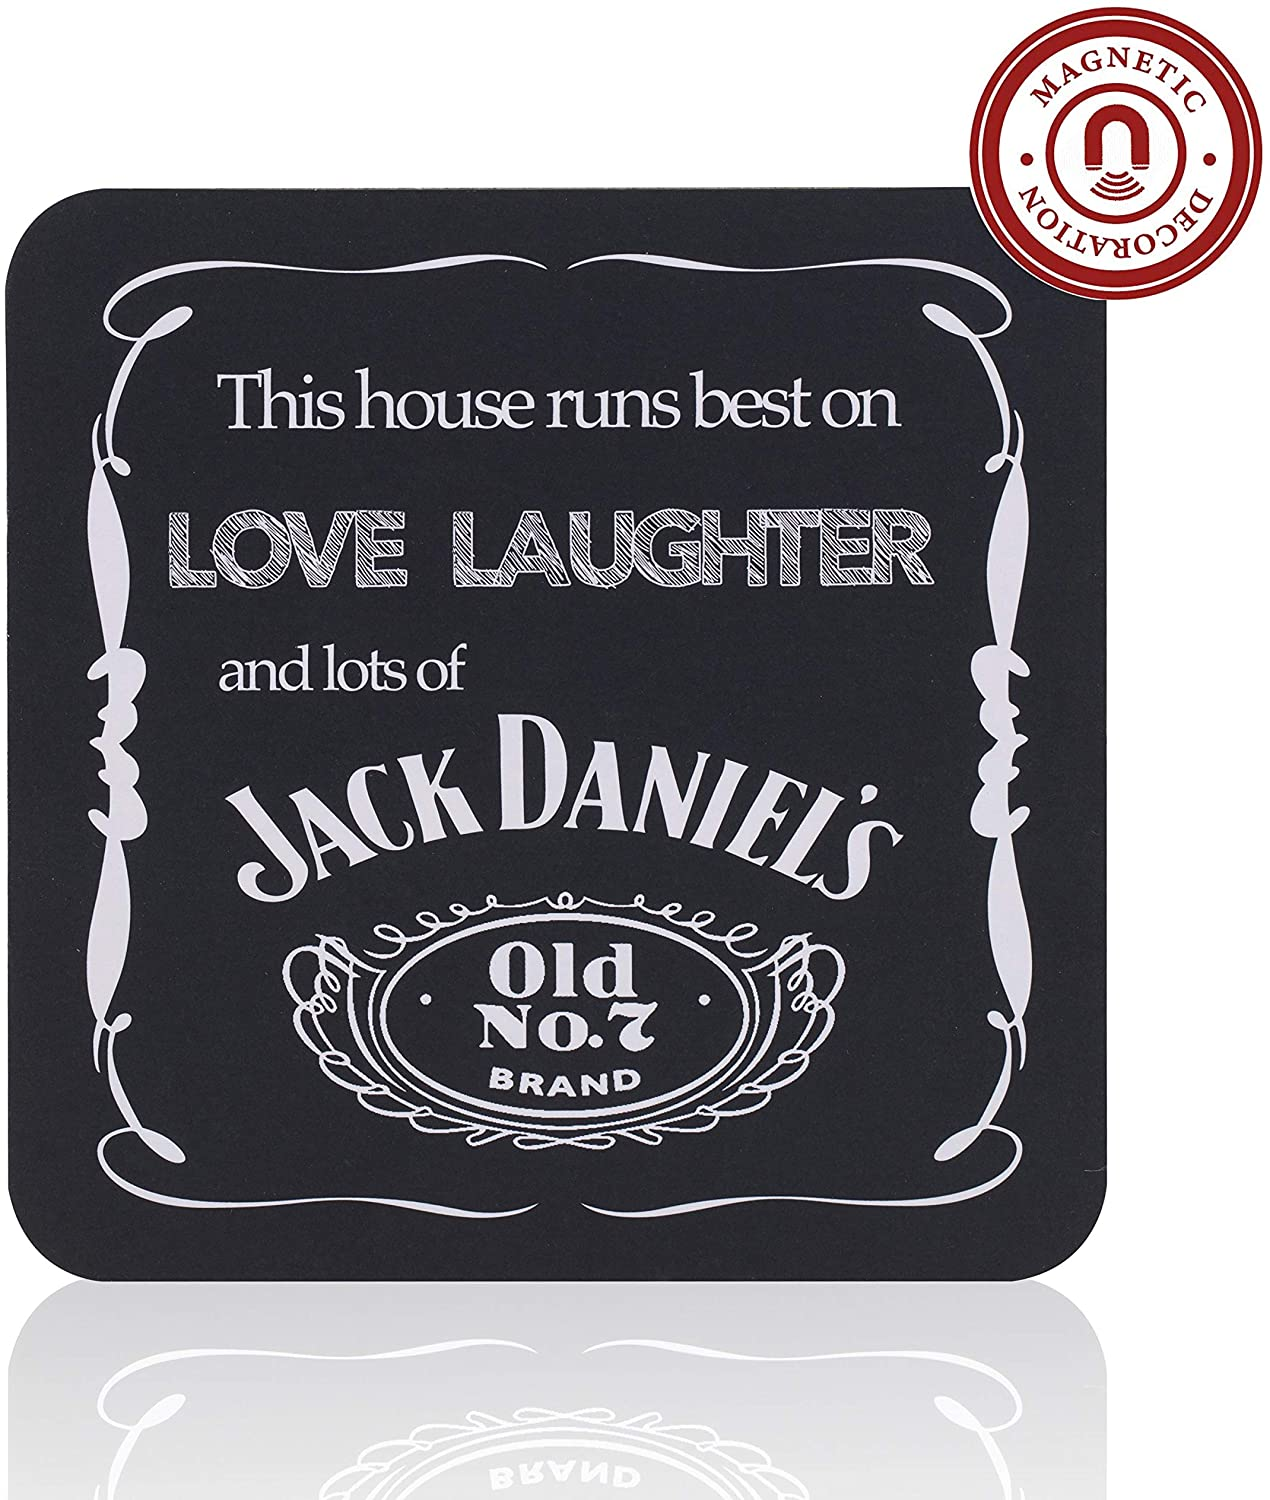 Multifunctional Magnetic Pad, Funny Drink Coaster, Double-Sided Refrigerator Magnet & Bar Décor, Magnetic Dry Erase Notepad with Motivational Message - Stylish Gift for Men